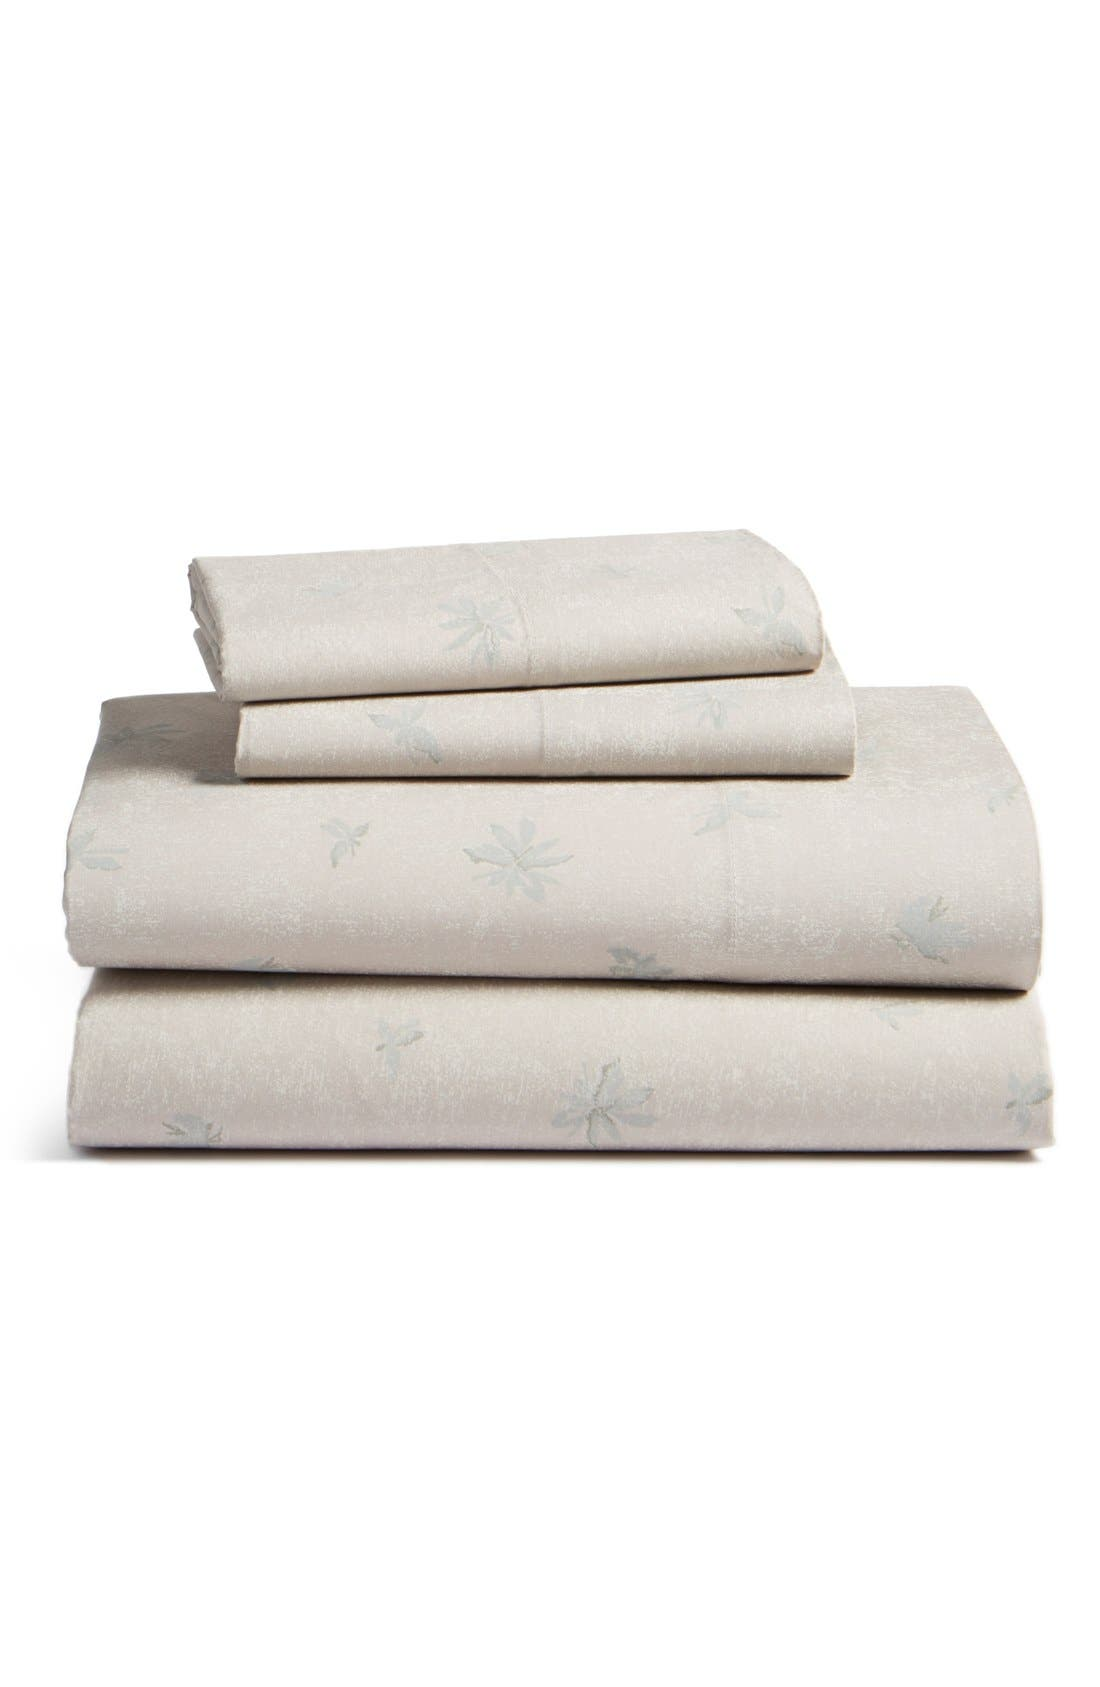 BEEKMAN 1802 'Minetto' Fitted Cotton Percale Sheet